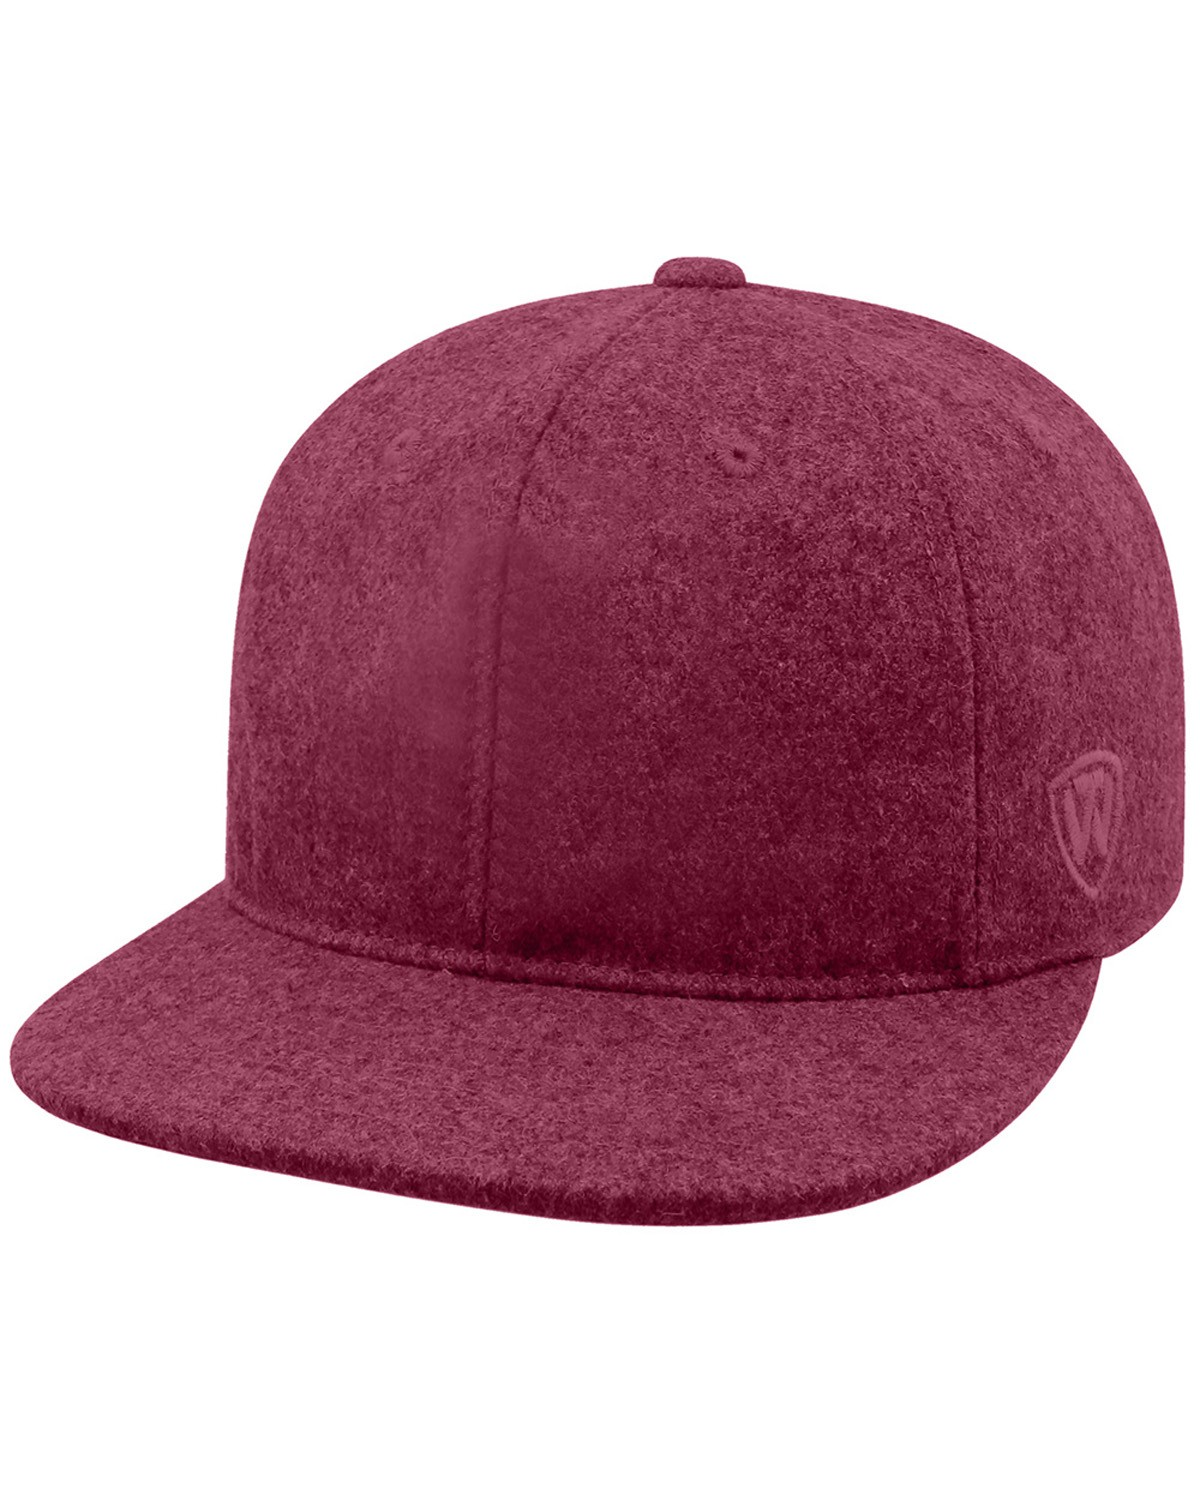 TW5515 Top Of The World BURGUNDY